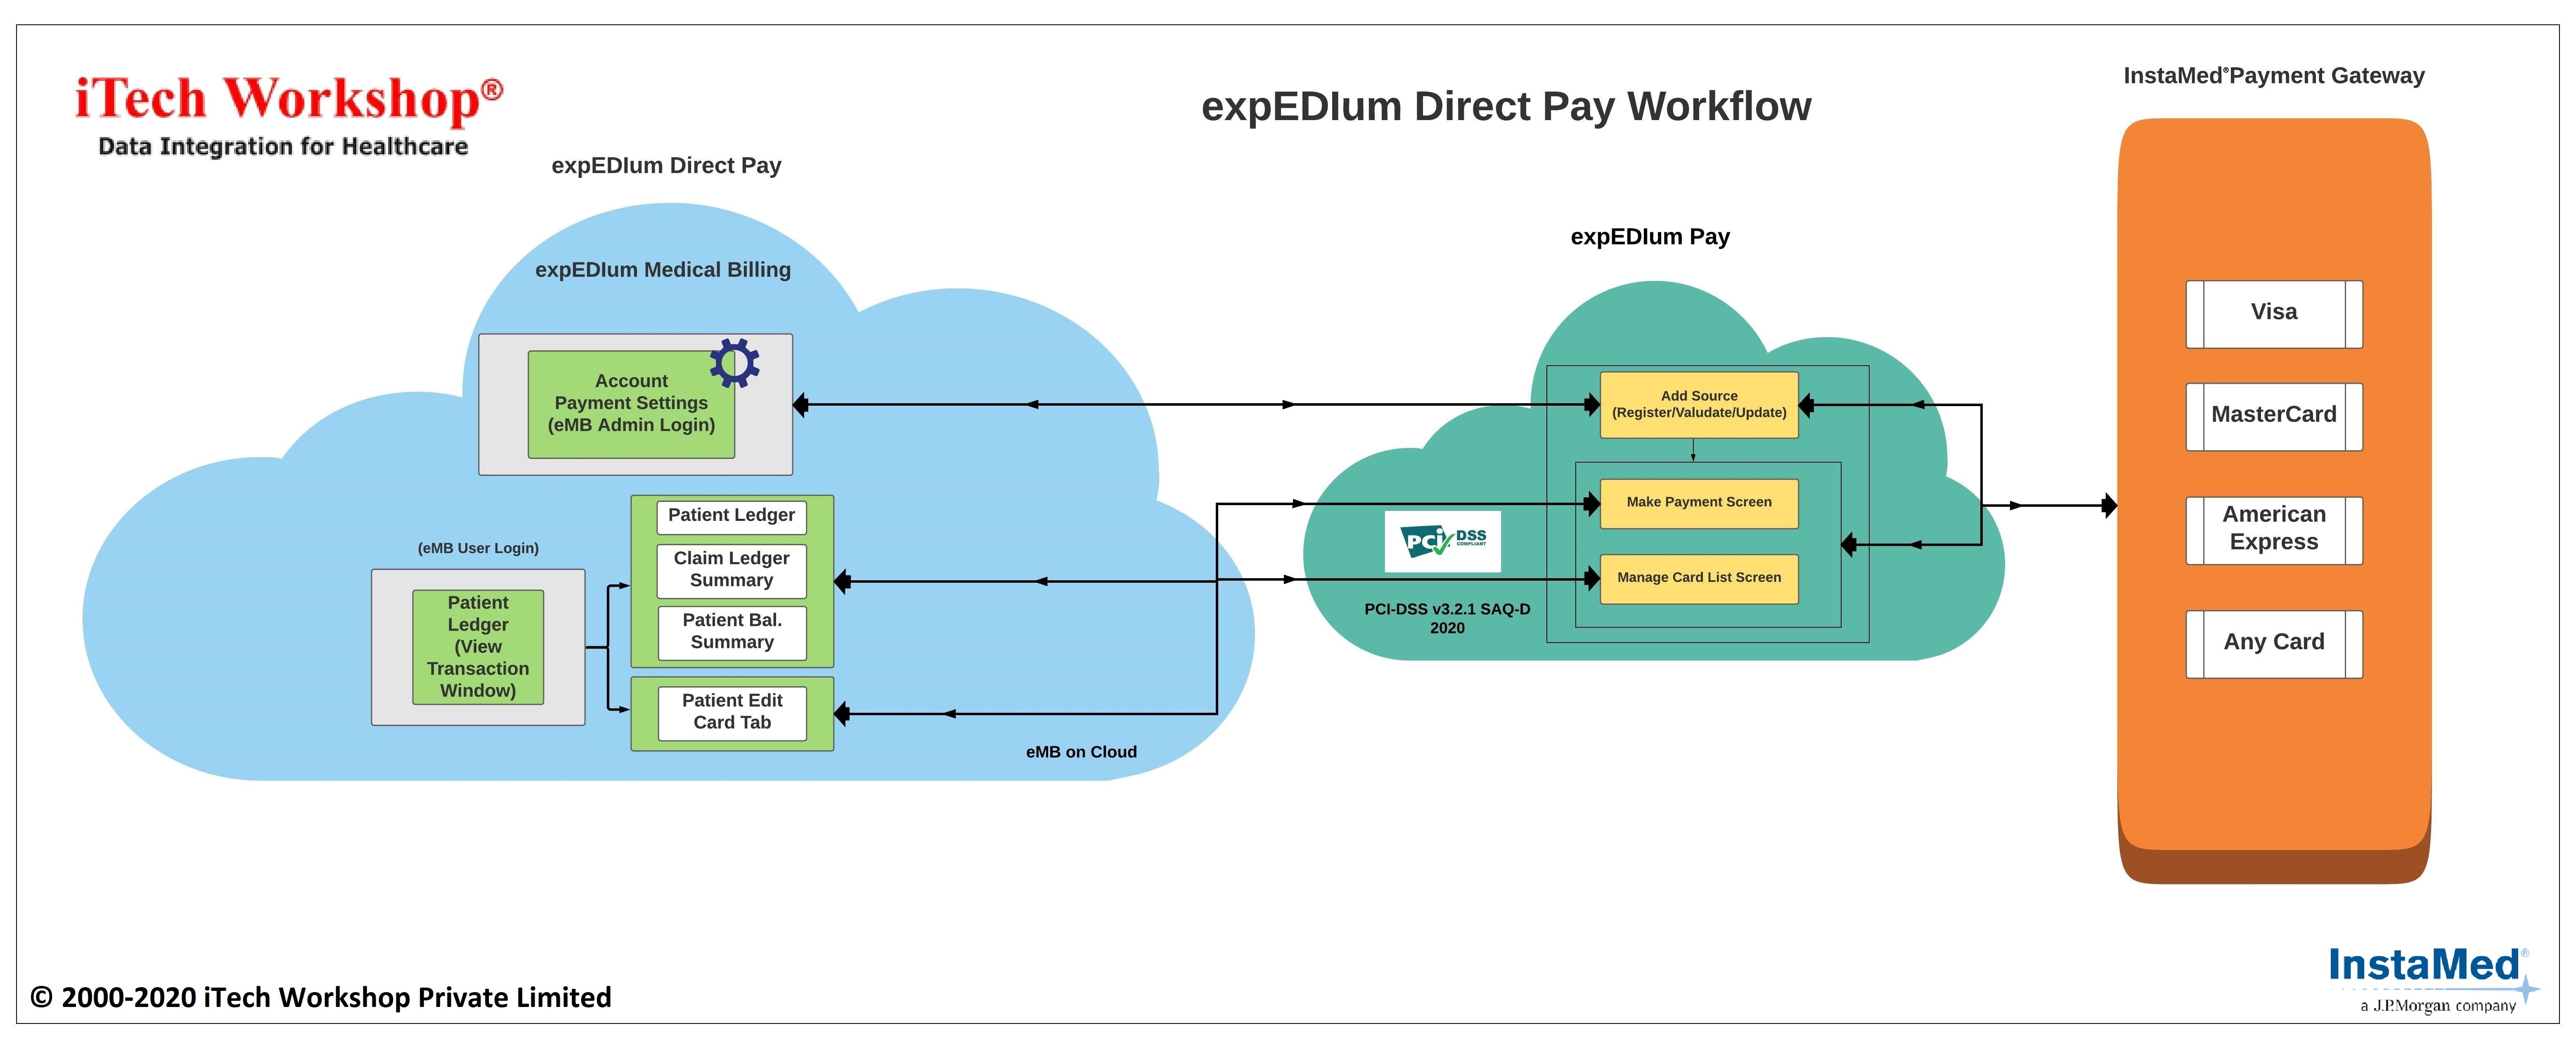 expEDIum Direct Pay Workflow